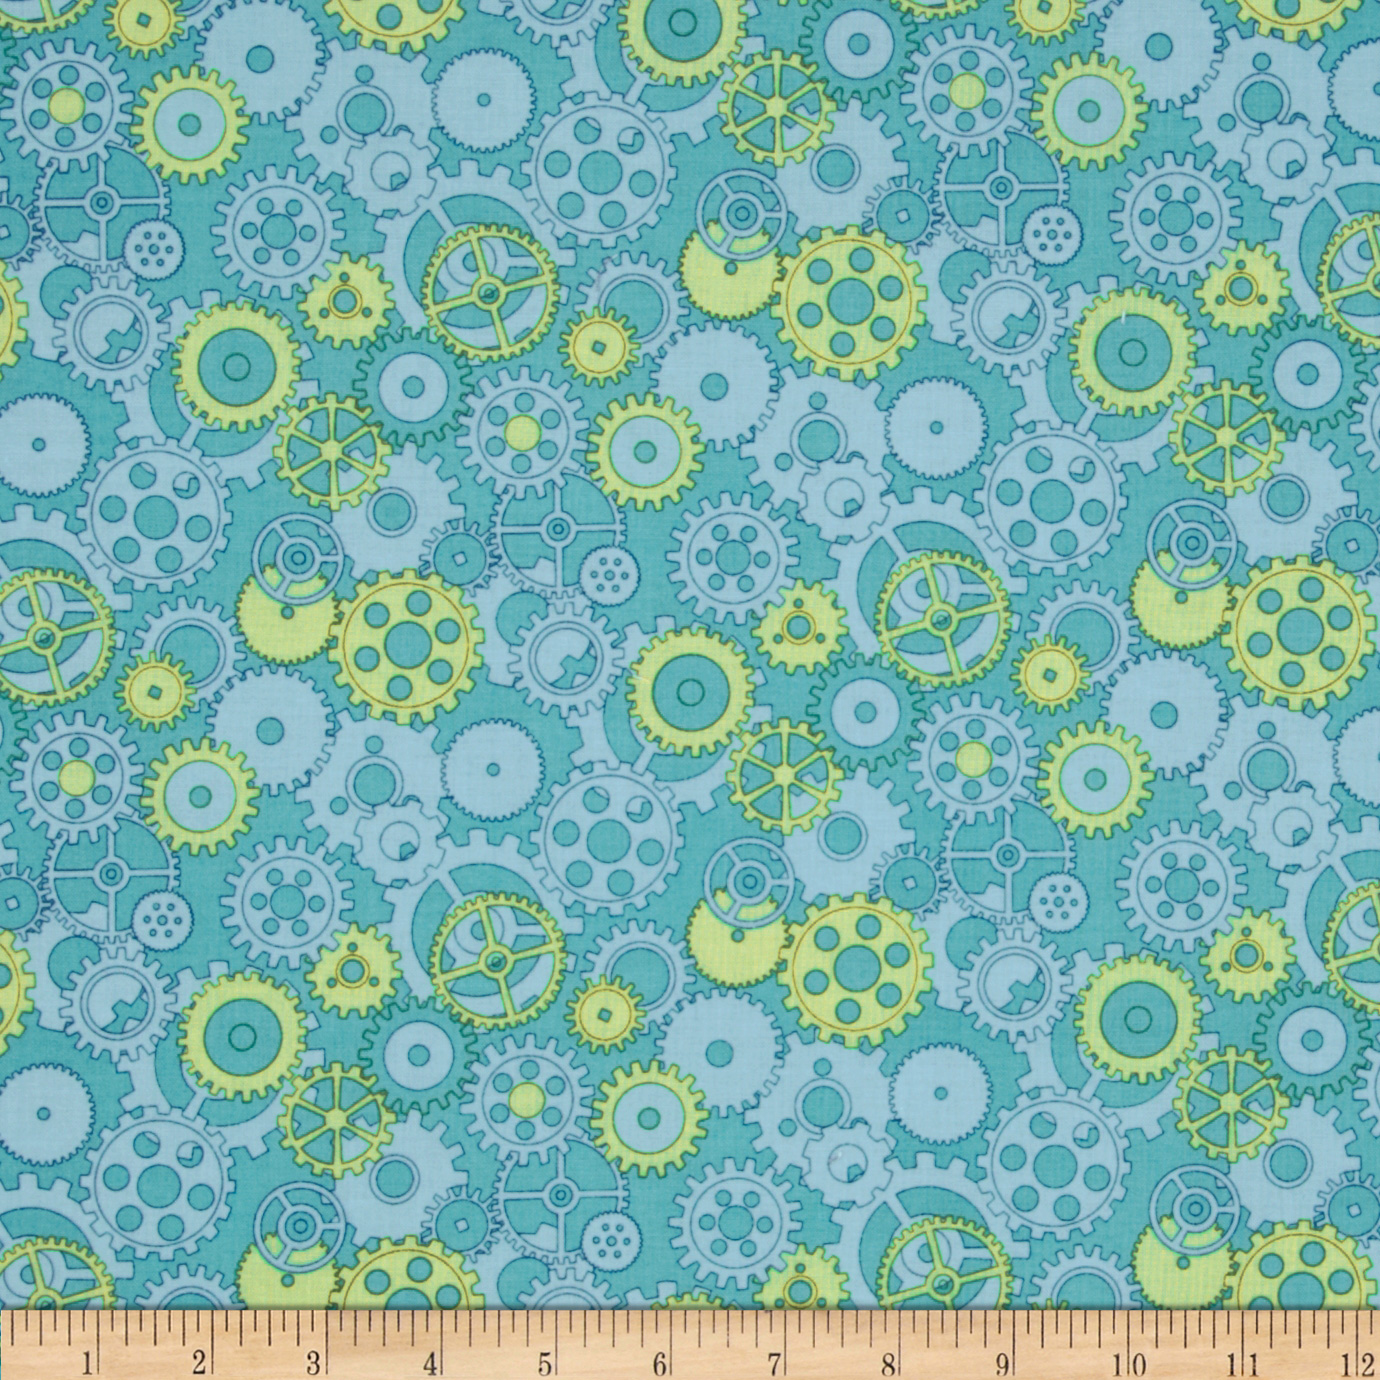 Mr. Roboto Gears Blue Fabric